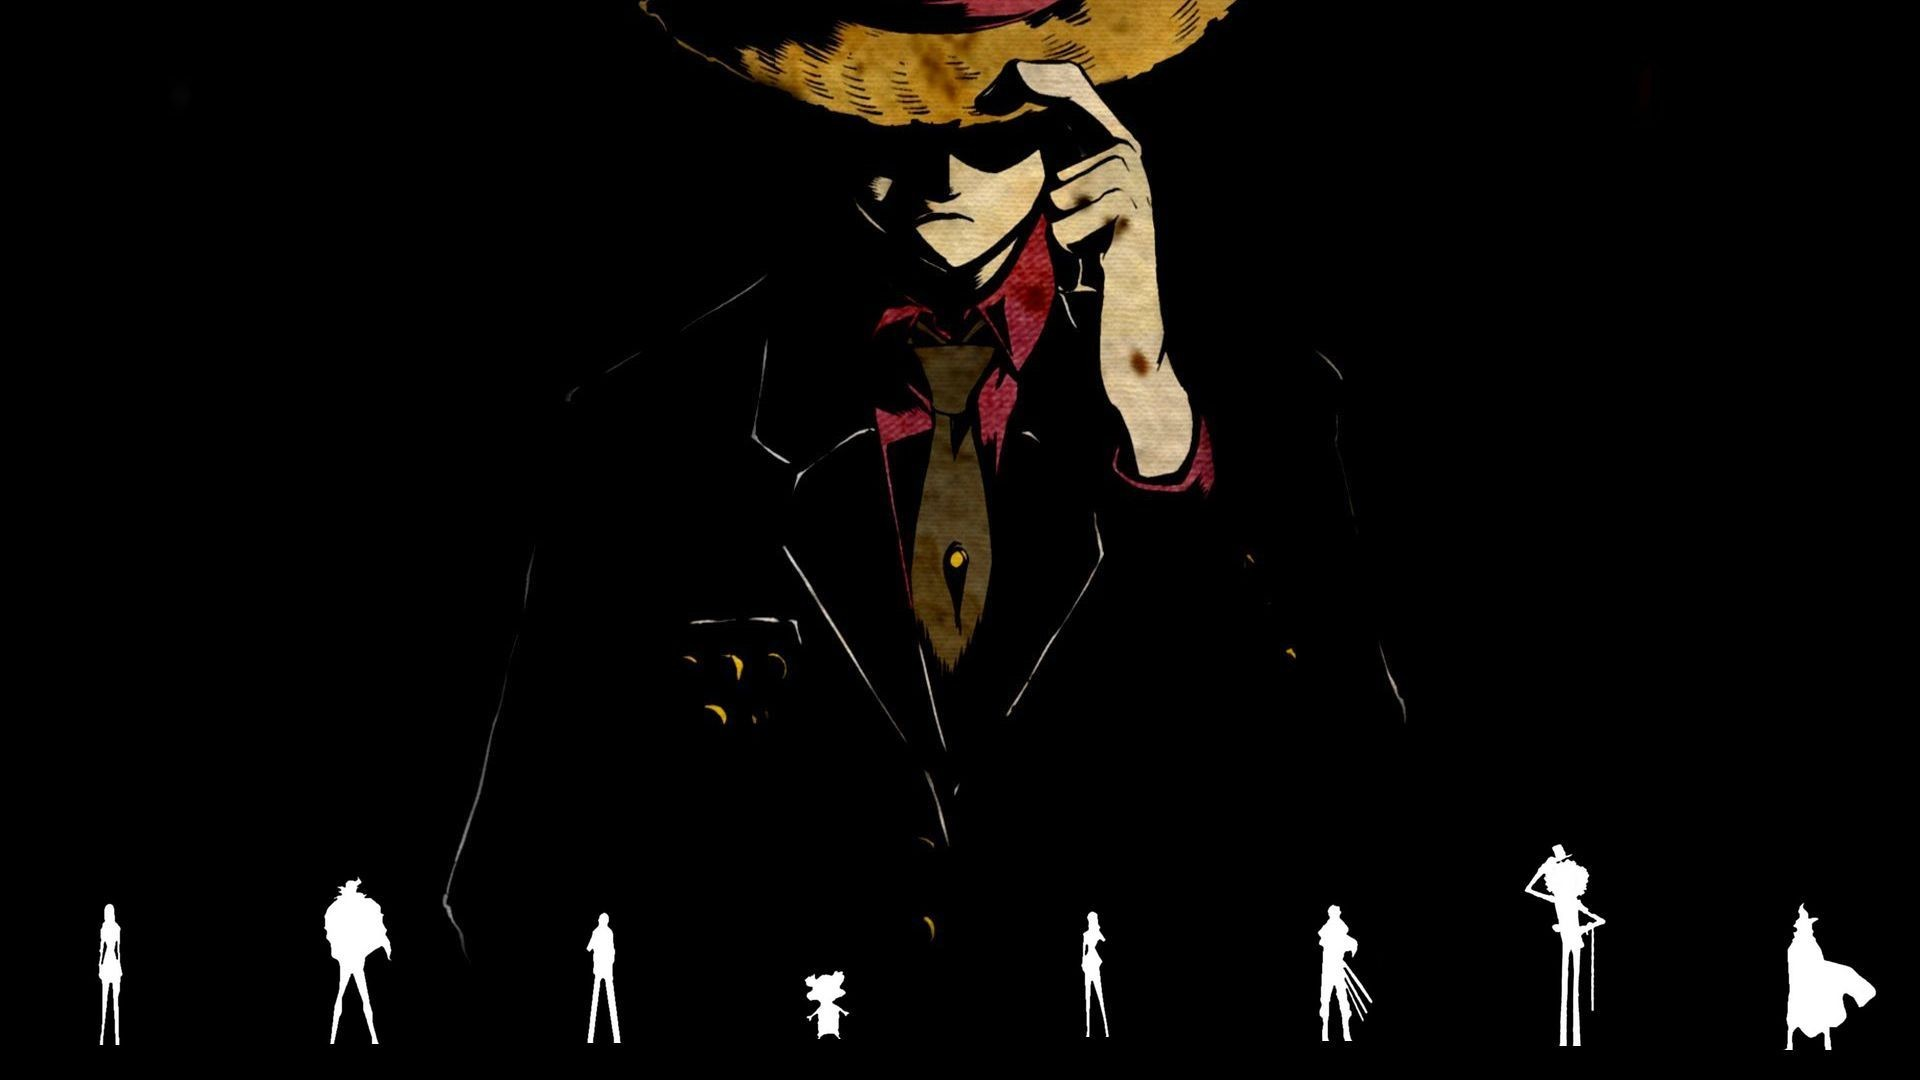 Best ideas about One Piece Wallpaper Iphone on Pinterest One 1920×1080